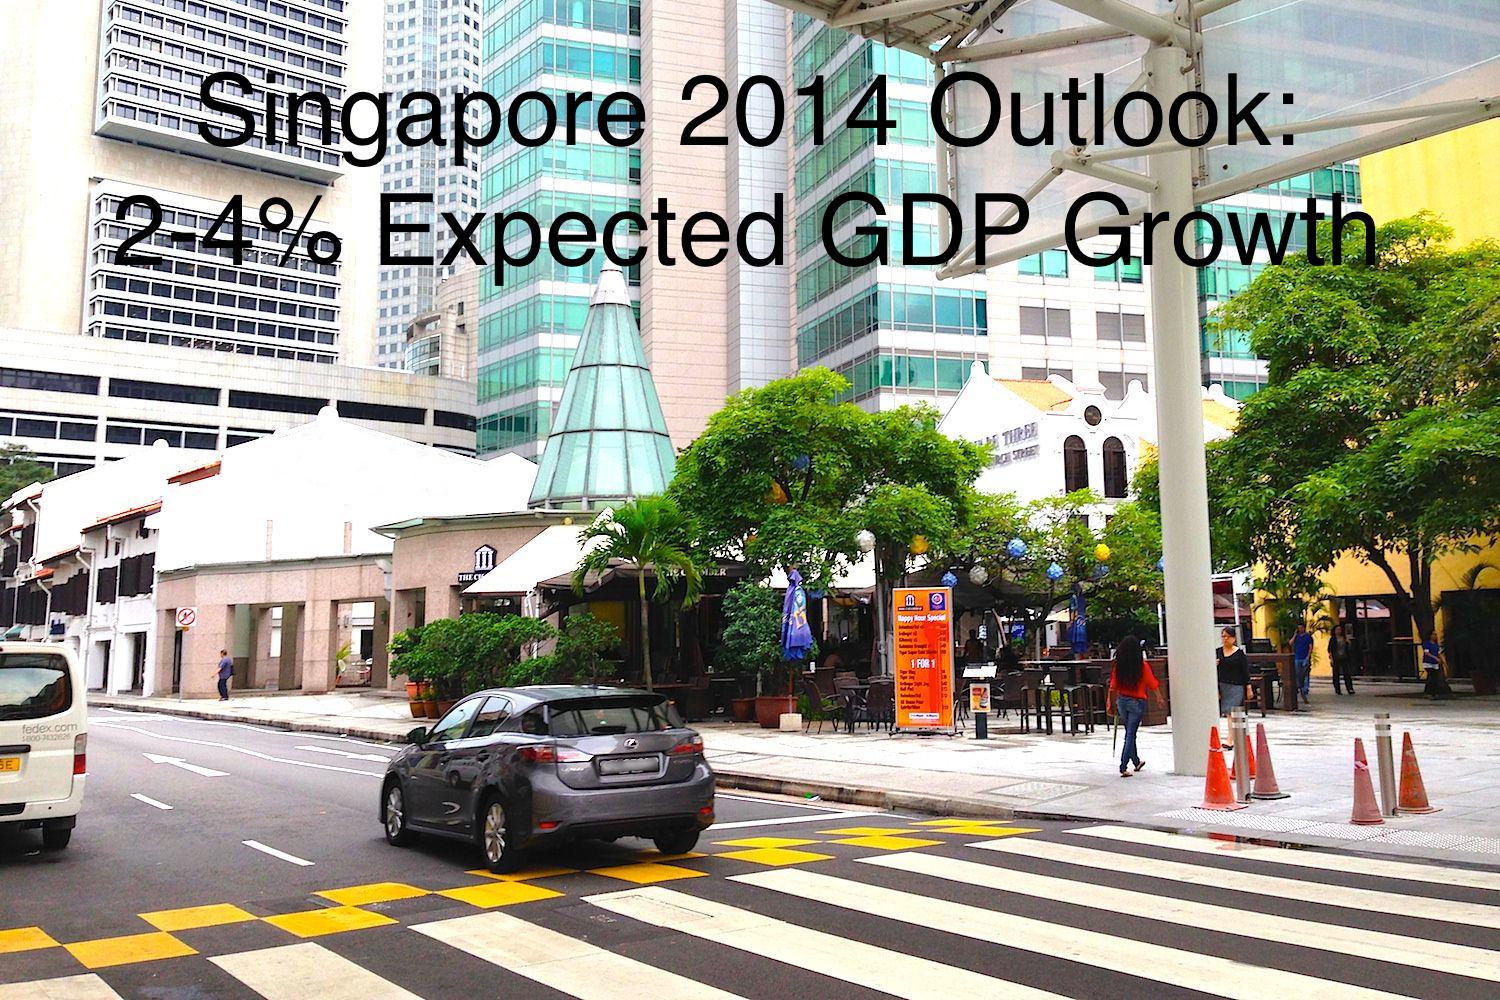 singapore-GDP-outlook-2014